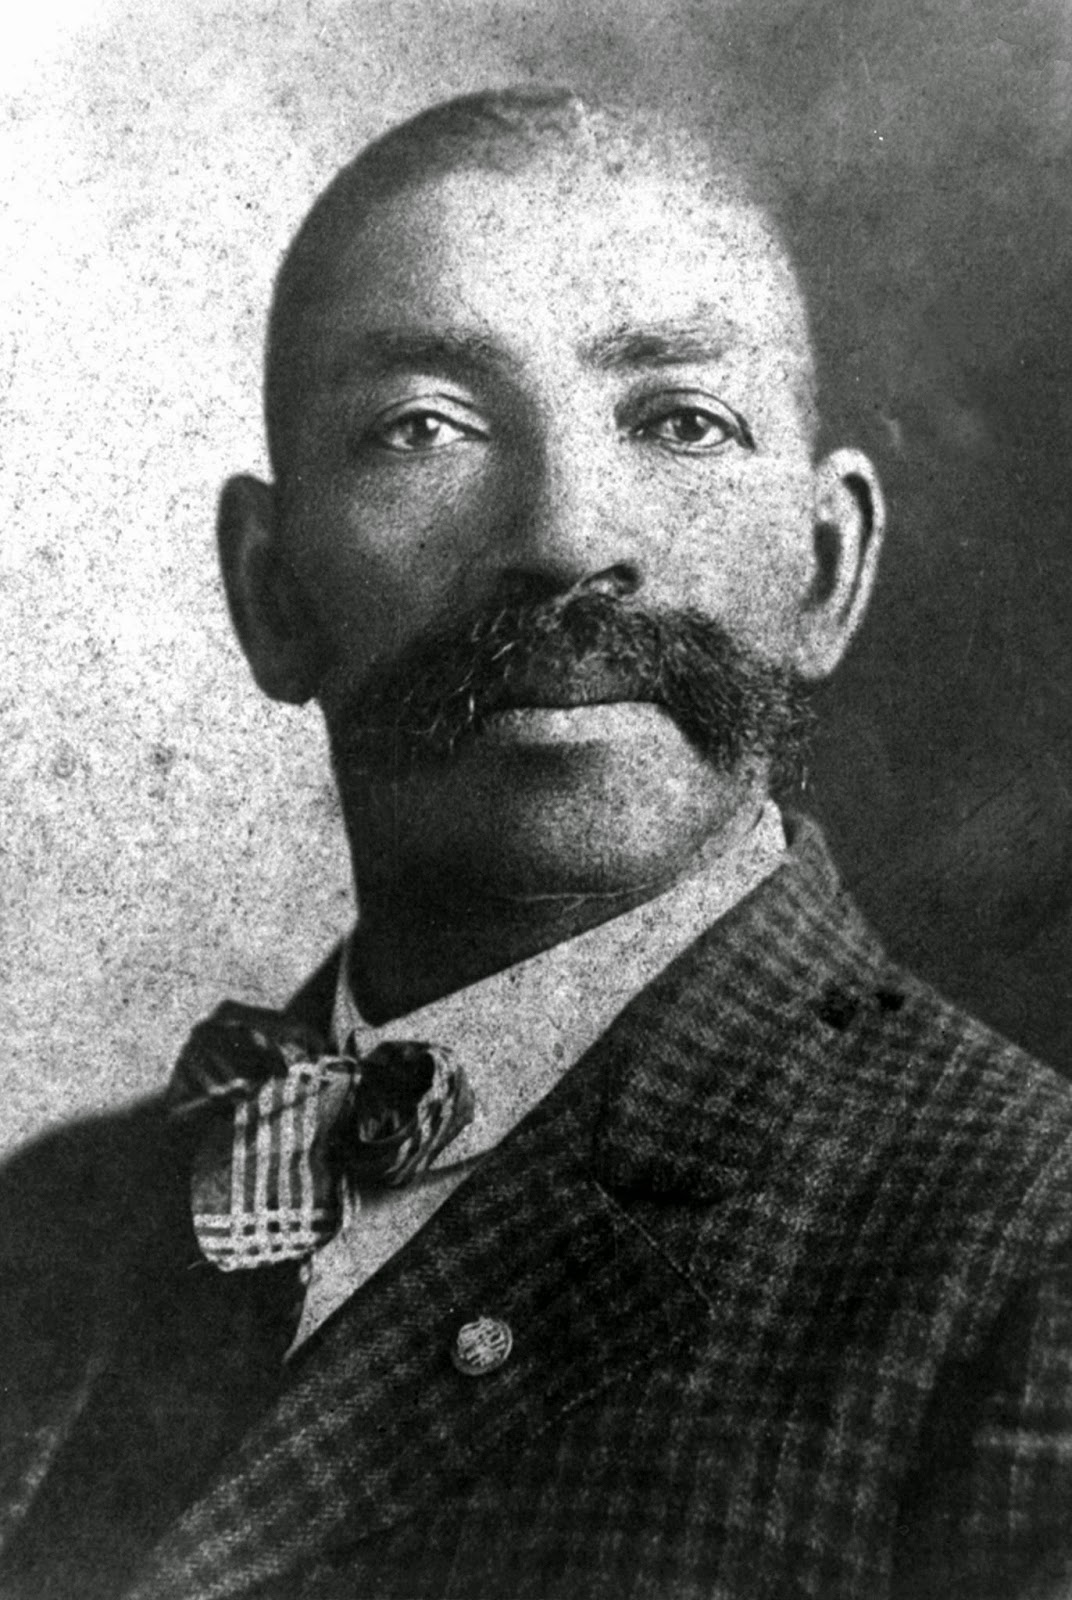 Martin Grams: Myth Debunked: Bass Reeves Was NOT The Lone